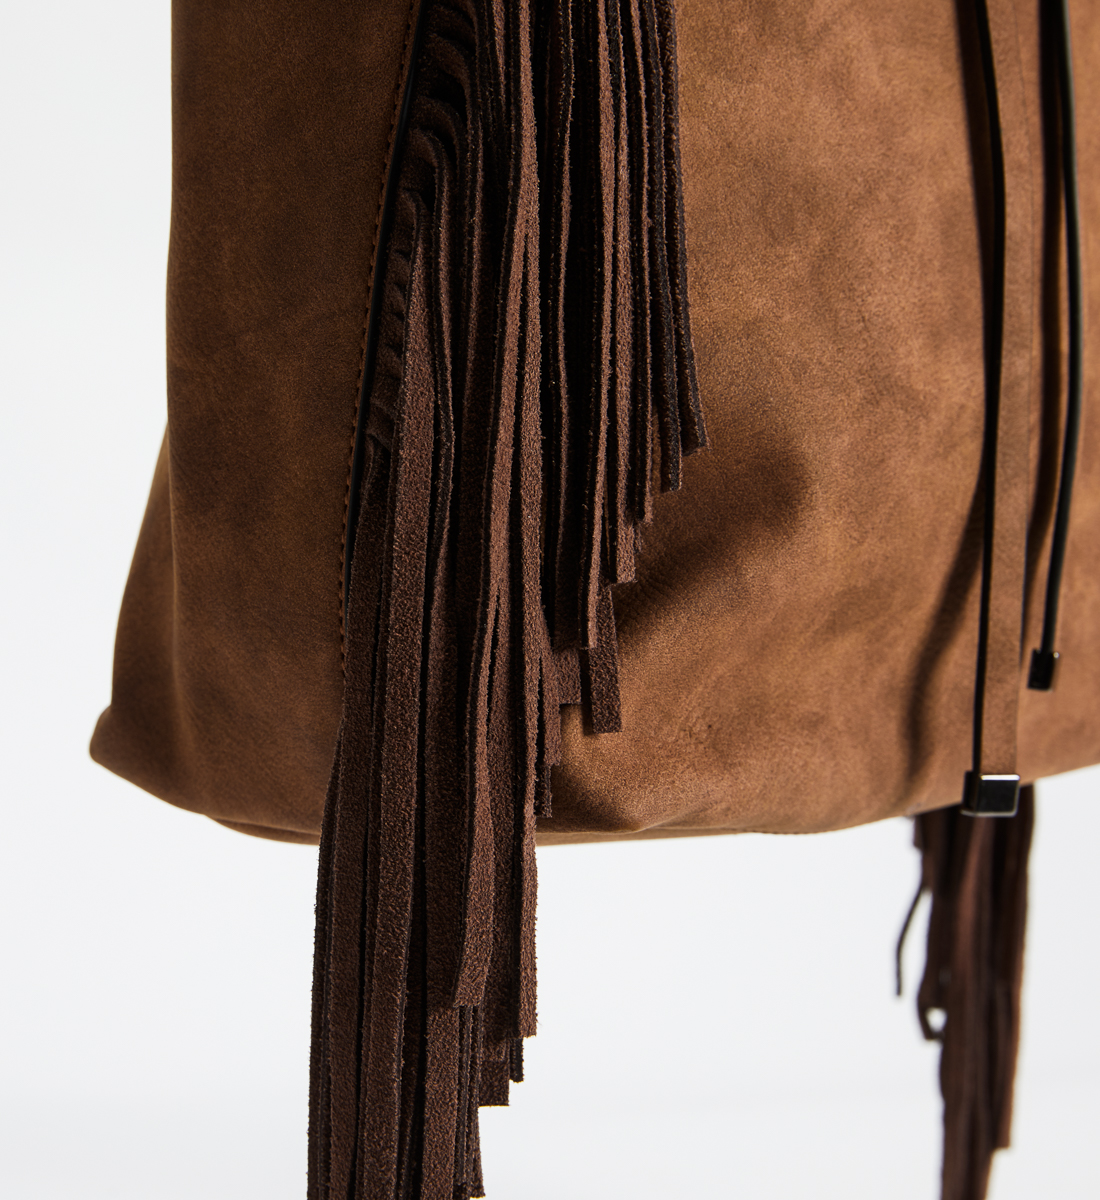 Large Fringe Crossbody, Tan, swatch